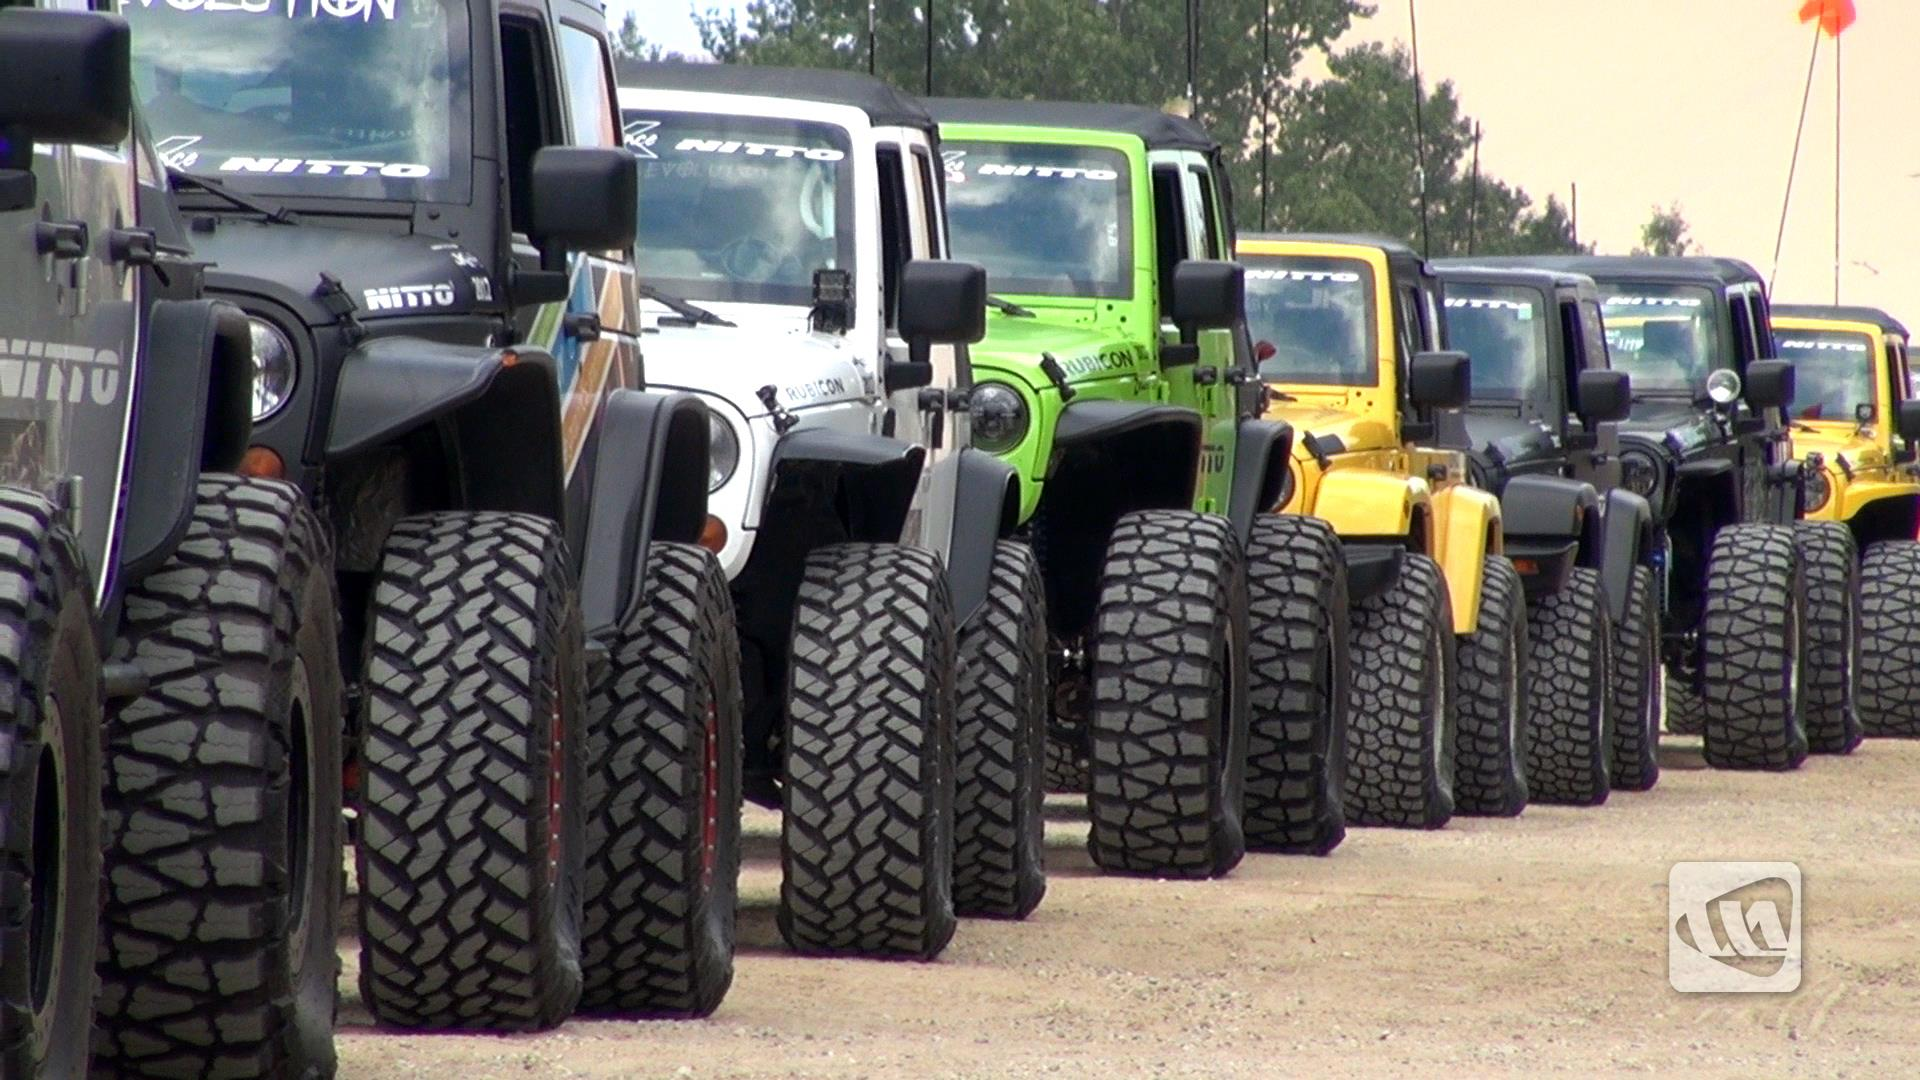 GOT-TREAD-WHA-WHA-WHA-WHA-WHA-WHA-the-soothing-hum-of-knobby-tires-in-motion-Music-to-my-wallpaper-wp4407549